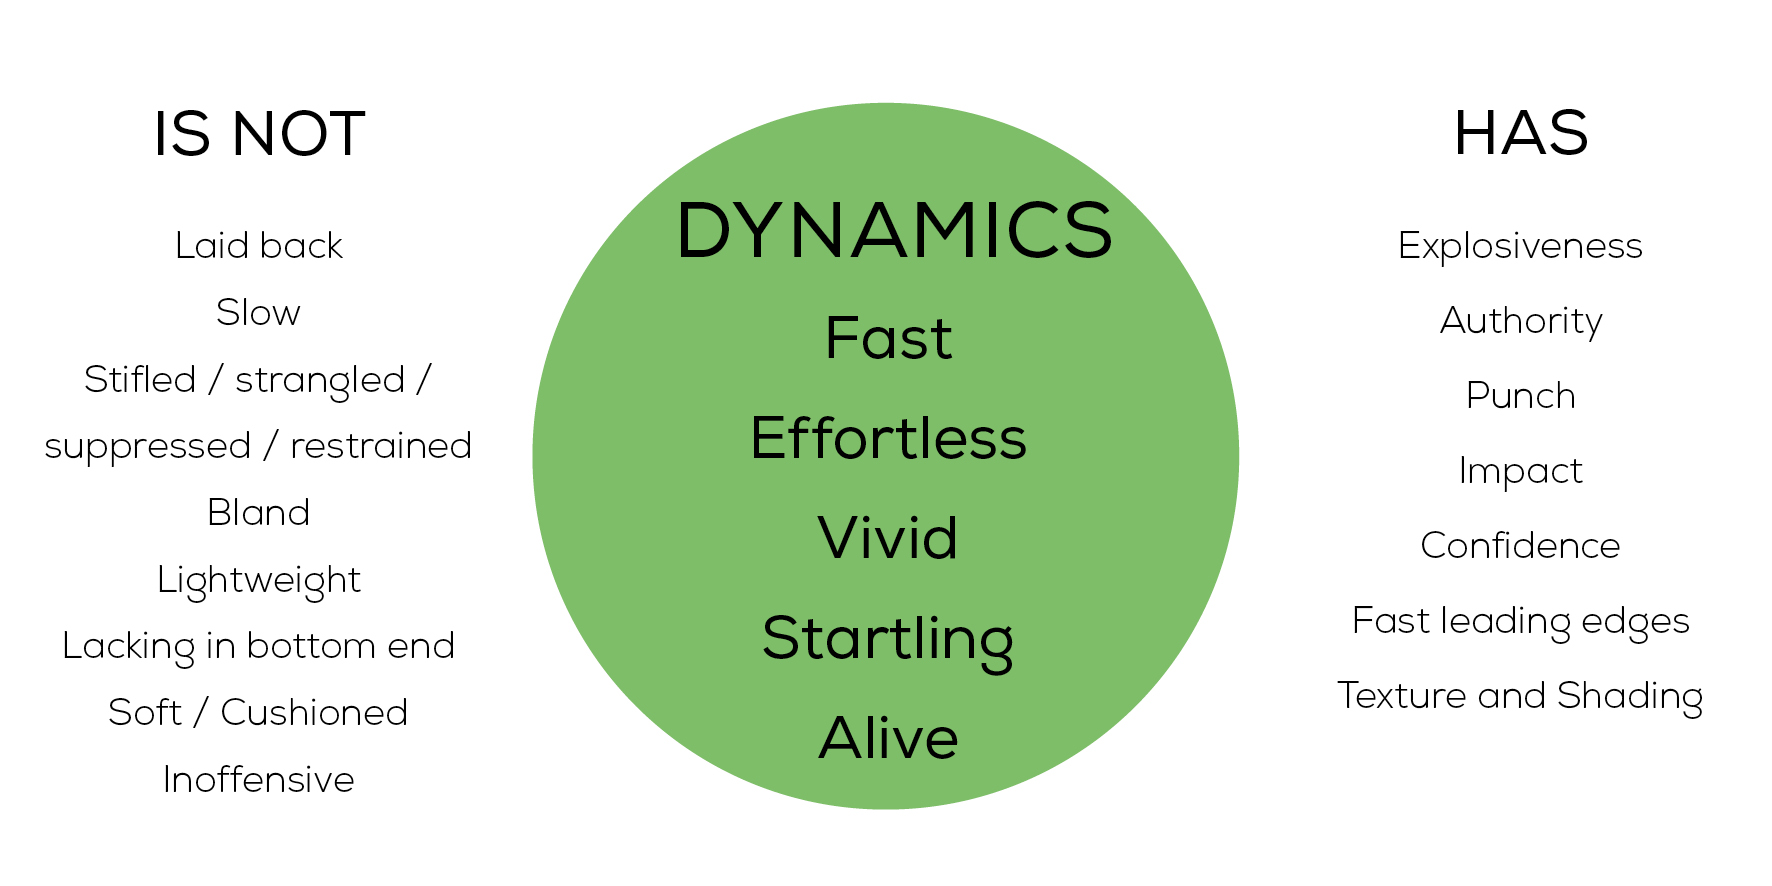 Diagram expanding qualities of Dynamics